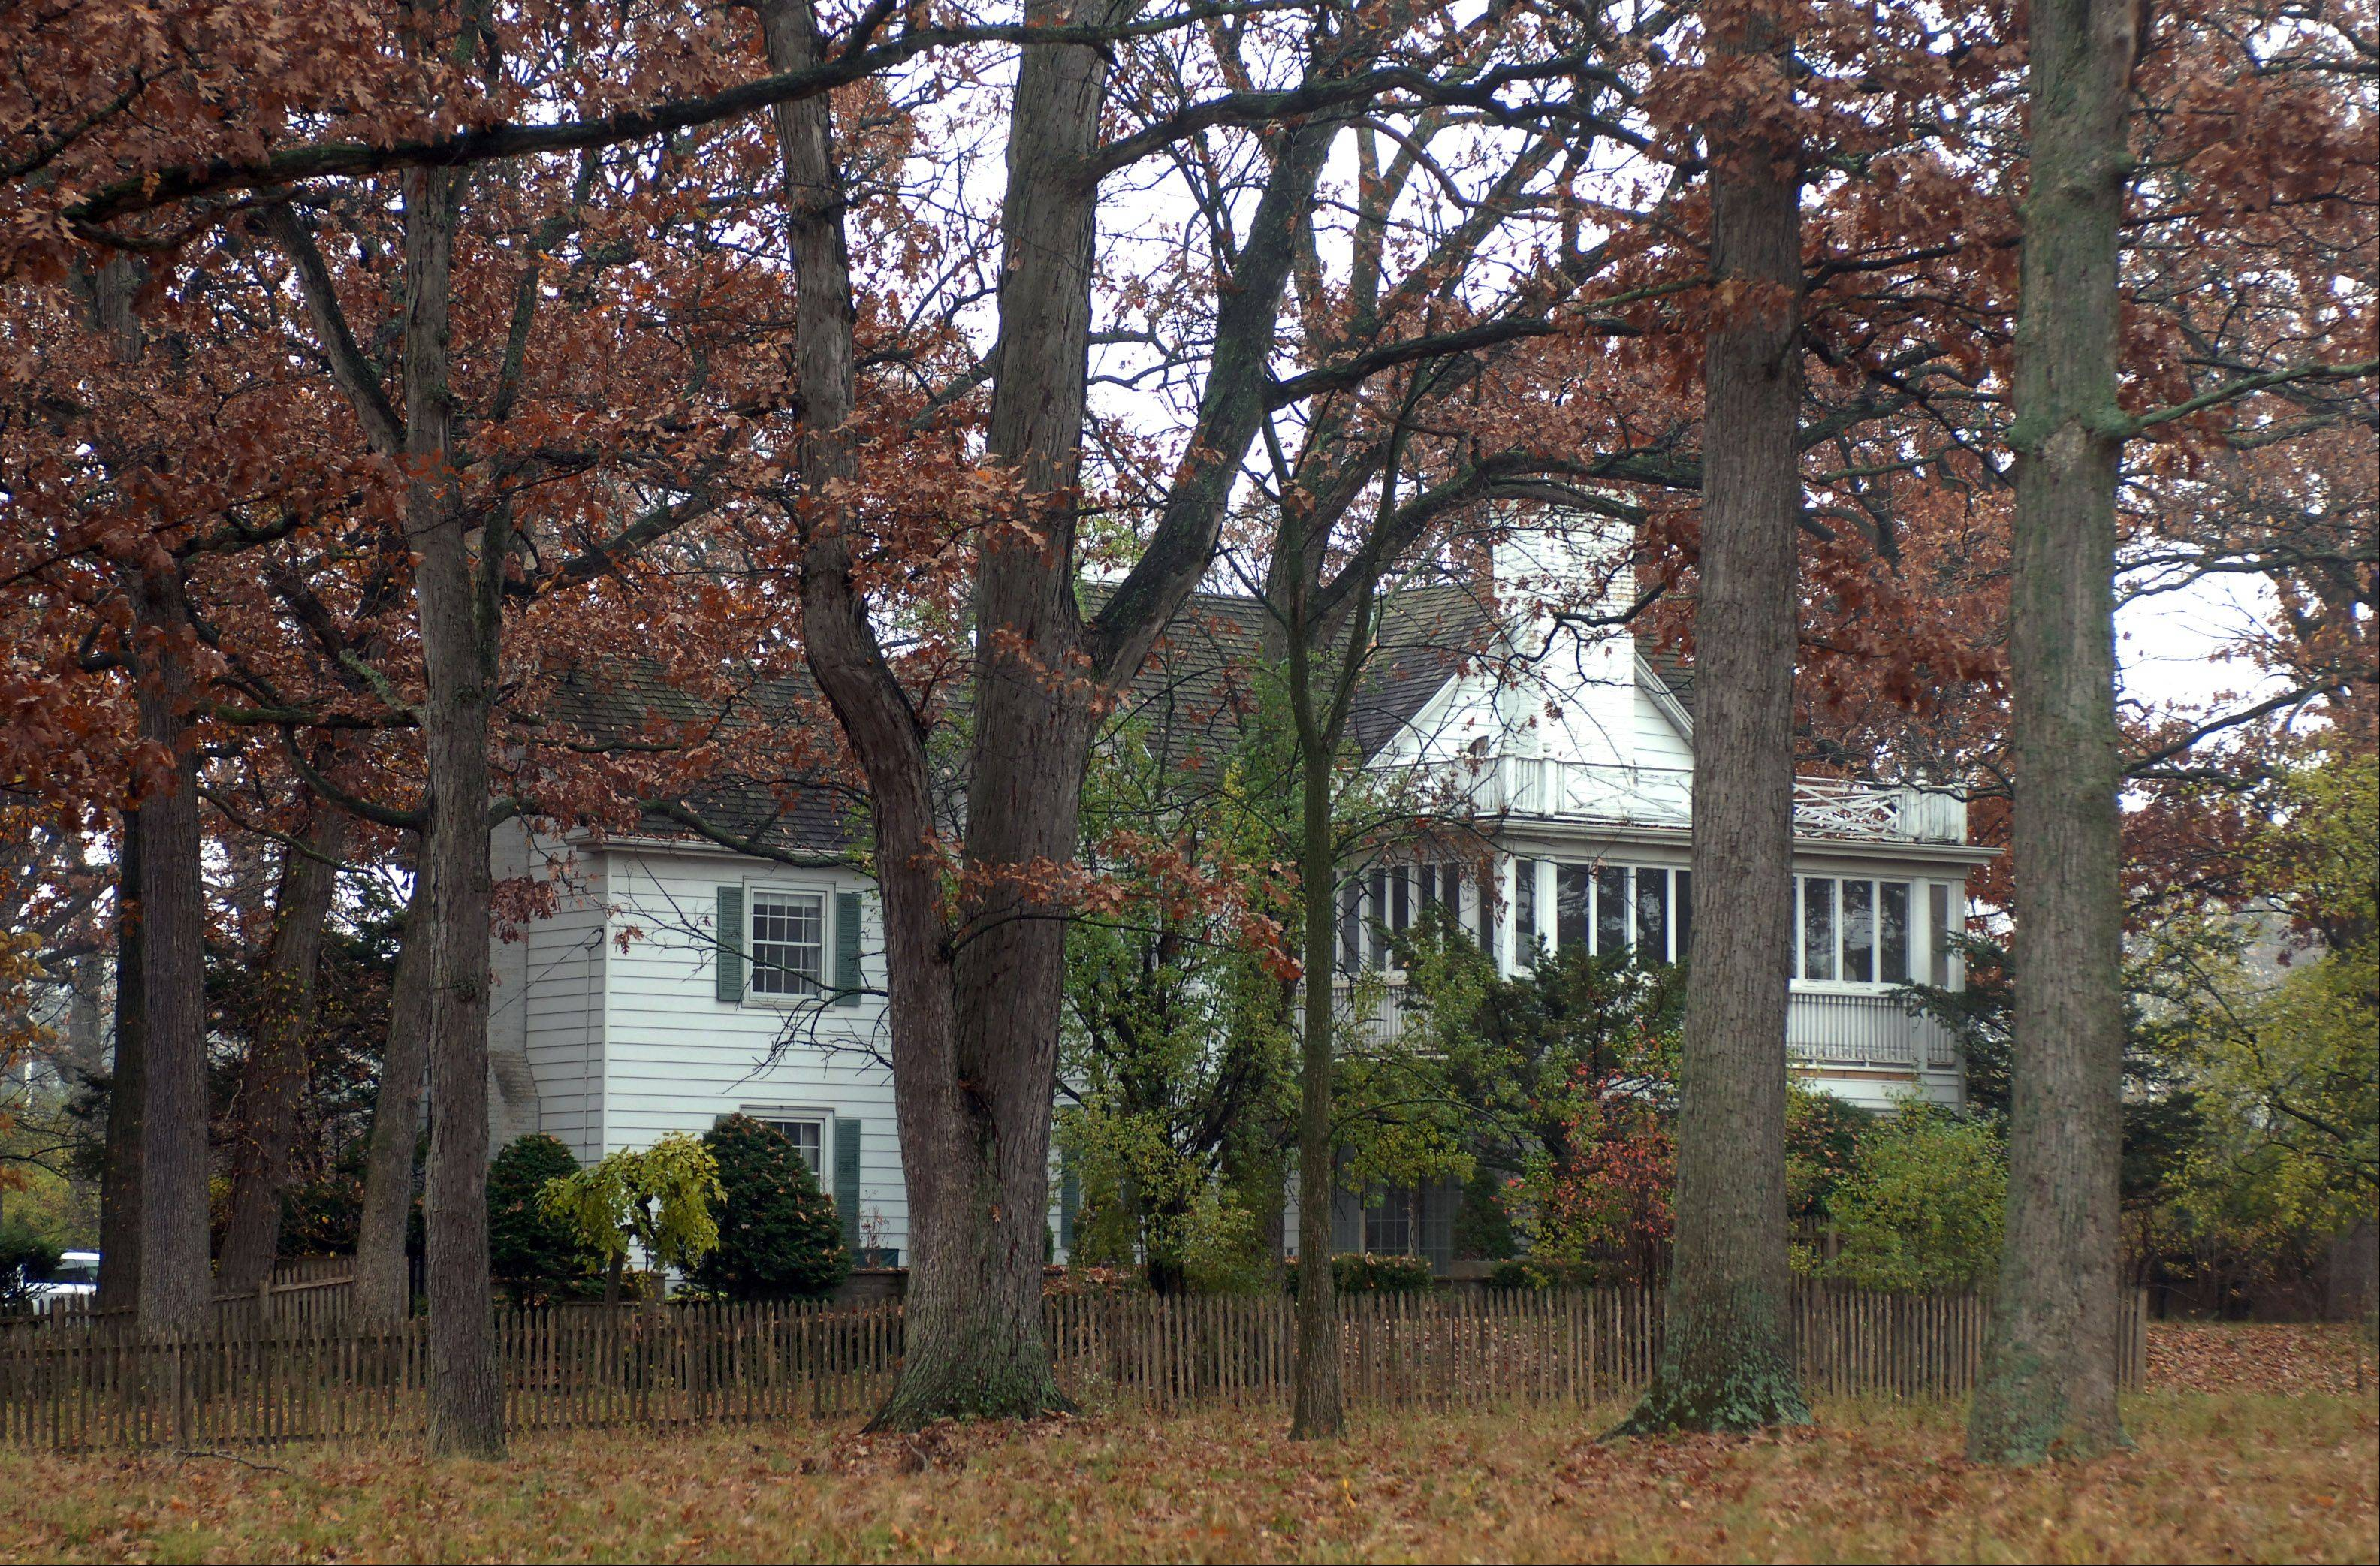 Plenty of trees surround the 1920s-era house at the former Whippoorwill Farm.